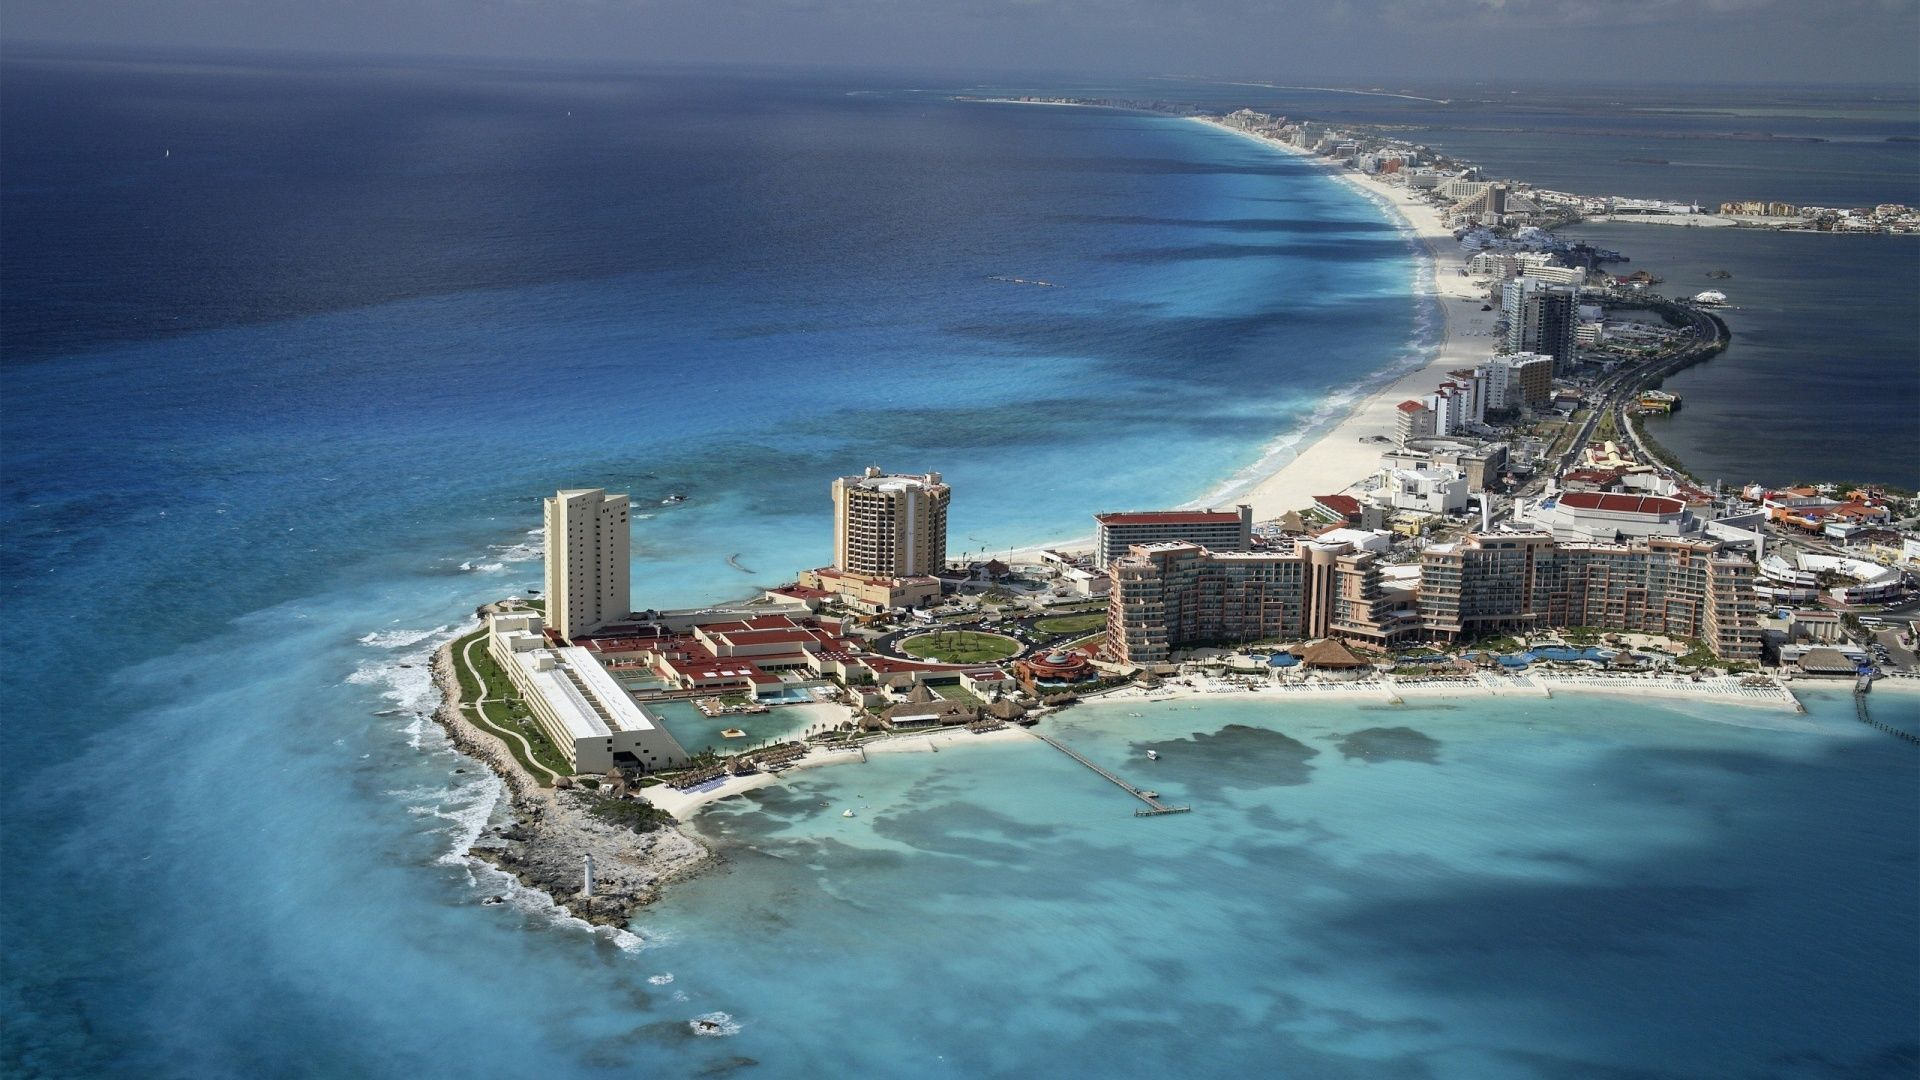 Cancun mexico city is the pretty's place to spend time whit you're ...